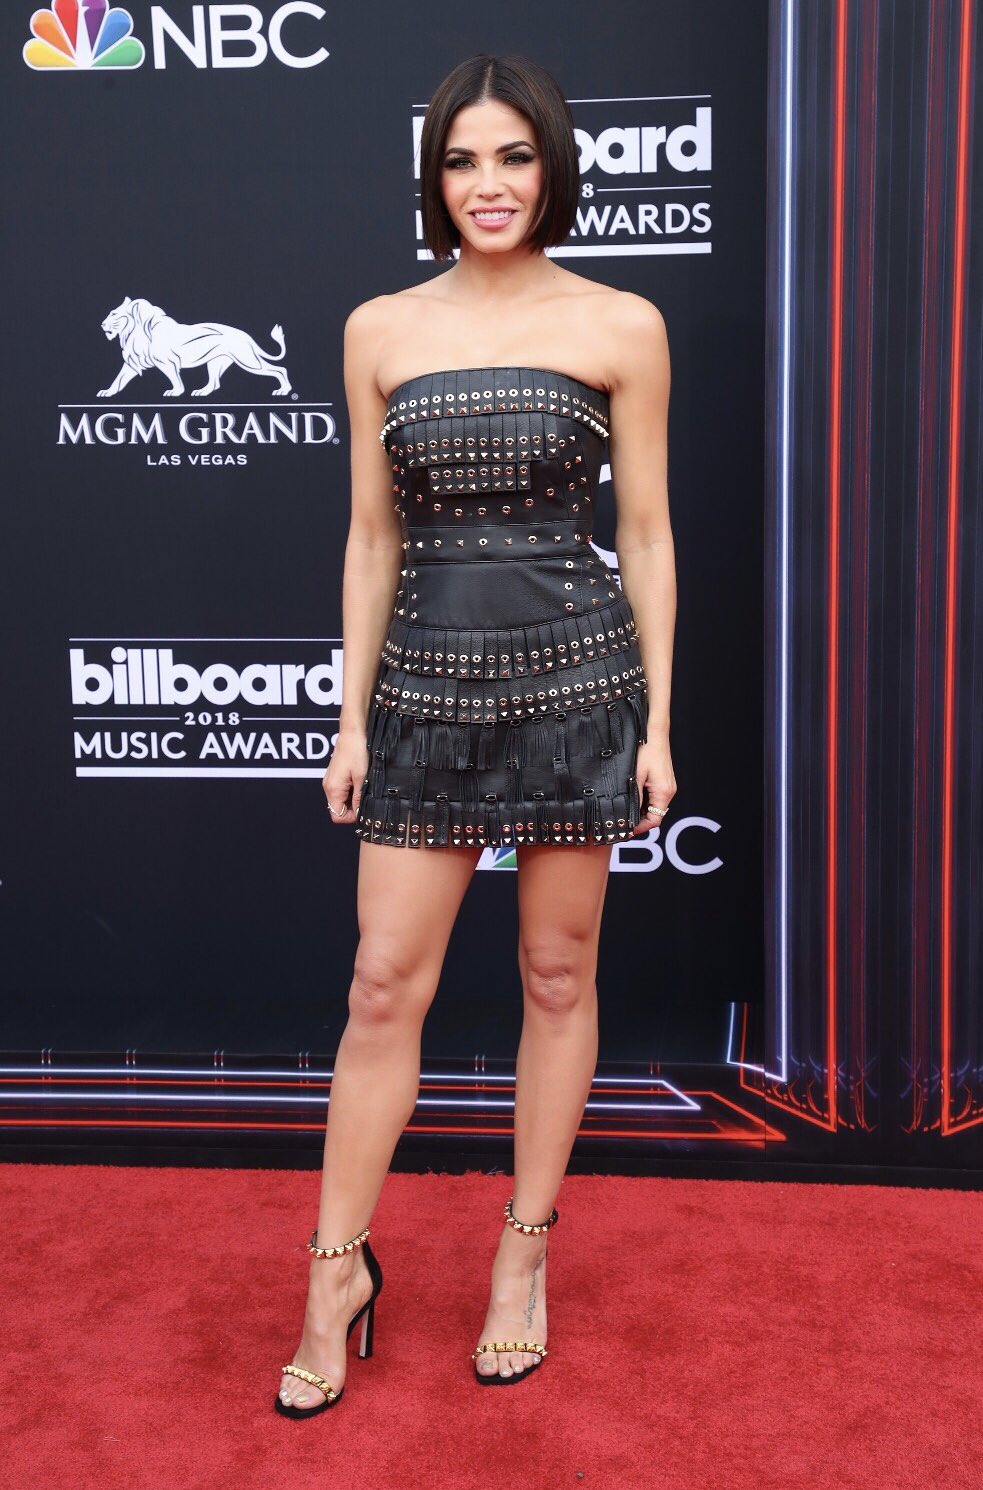 JENNA DEWAN Billboard Music Awards 2018